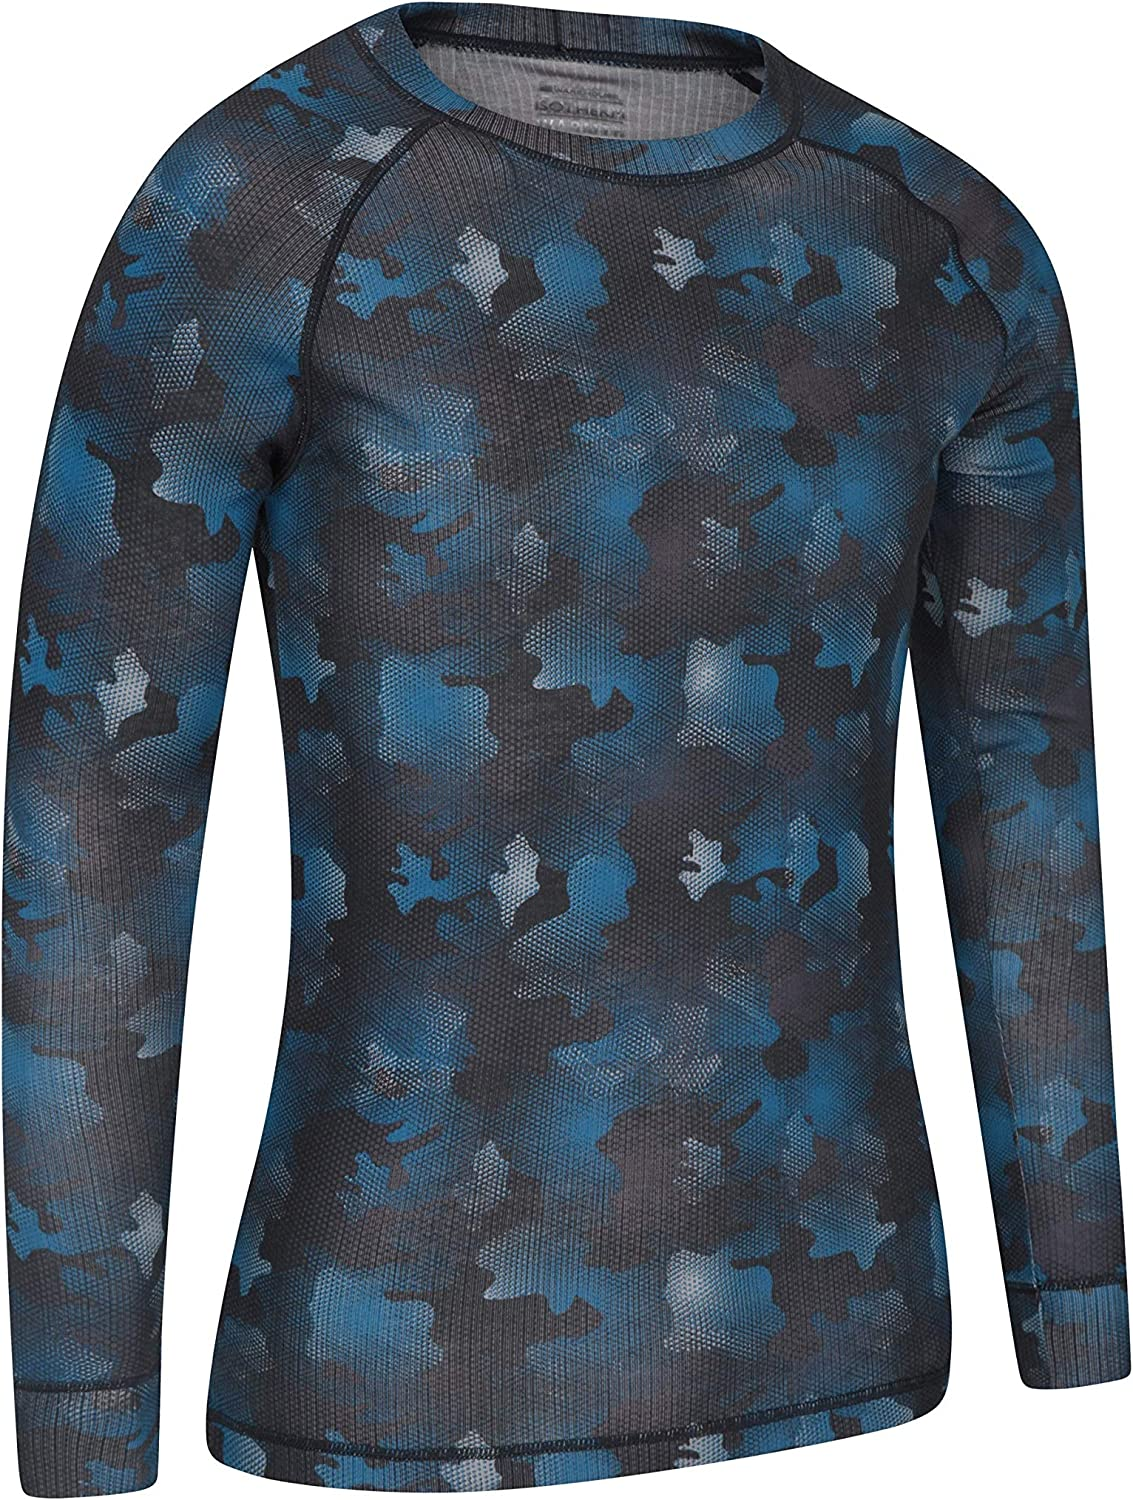 Travelling Black XS Mountain Warehouse Talus Mens Thermal Baselayer Top Lightweight Great for Winter Zip Neck Long Sleeve Sweater Quick Drying Pullover Breathable